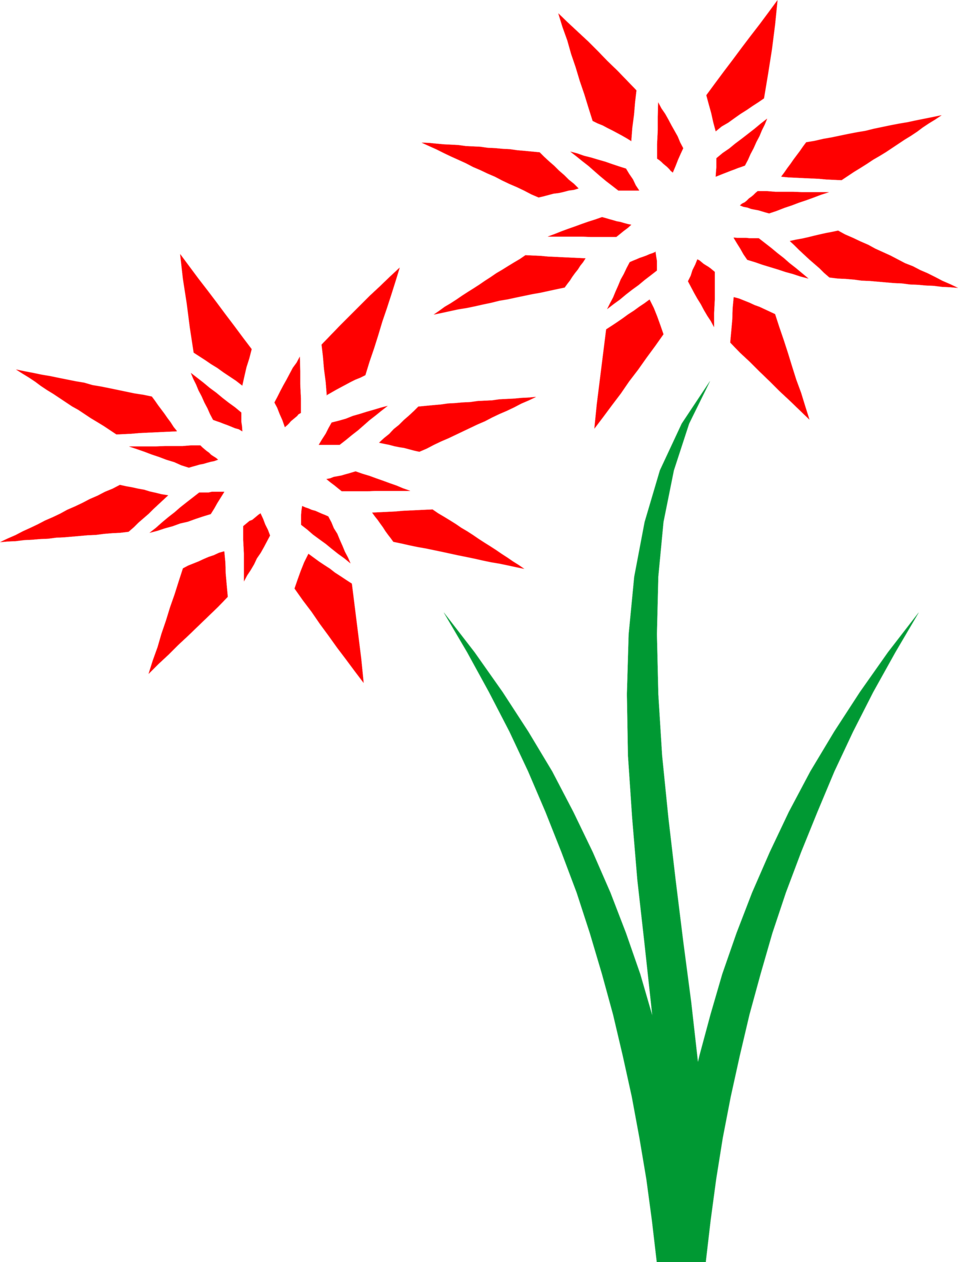 Flowers image free freeuse Flowers Red | Free Stock Photo | Illustration of red flowers | # 9759 freeuse